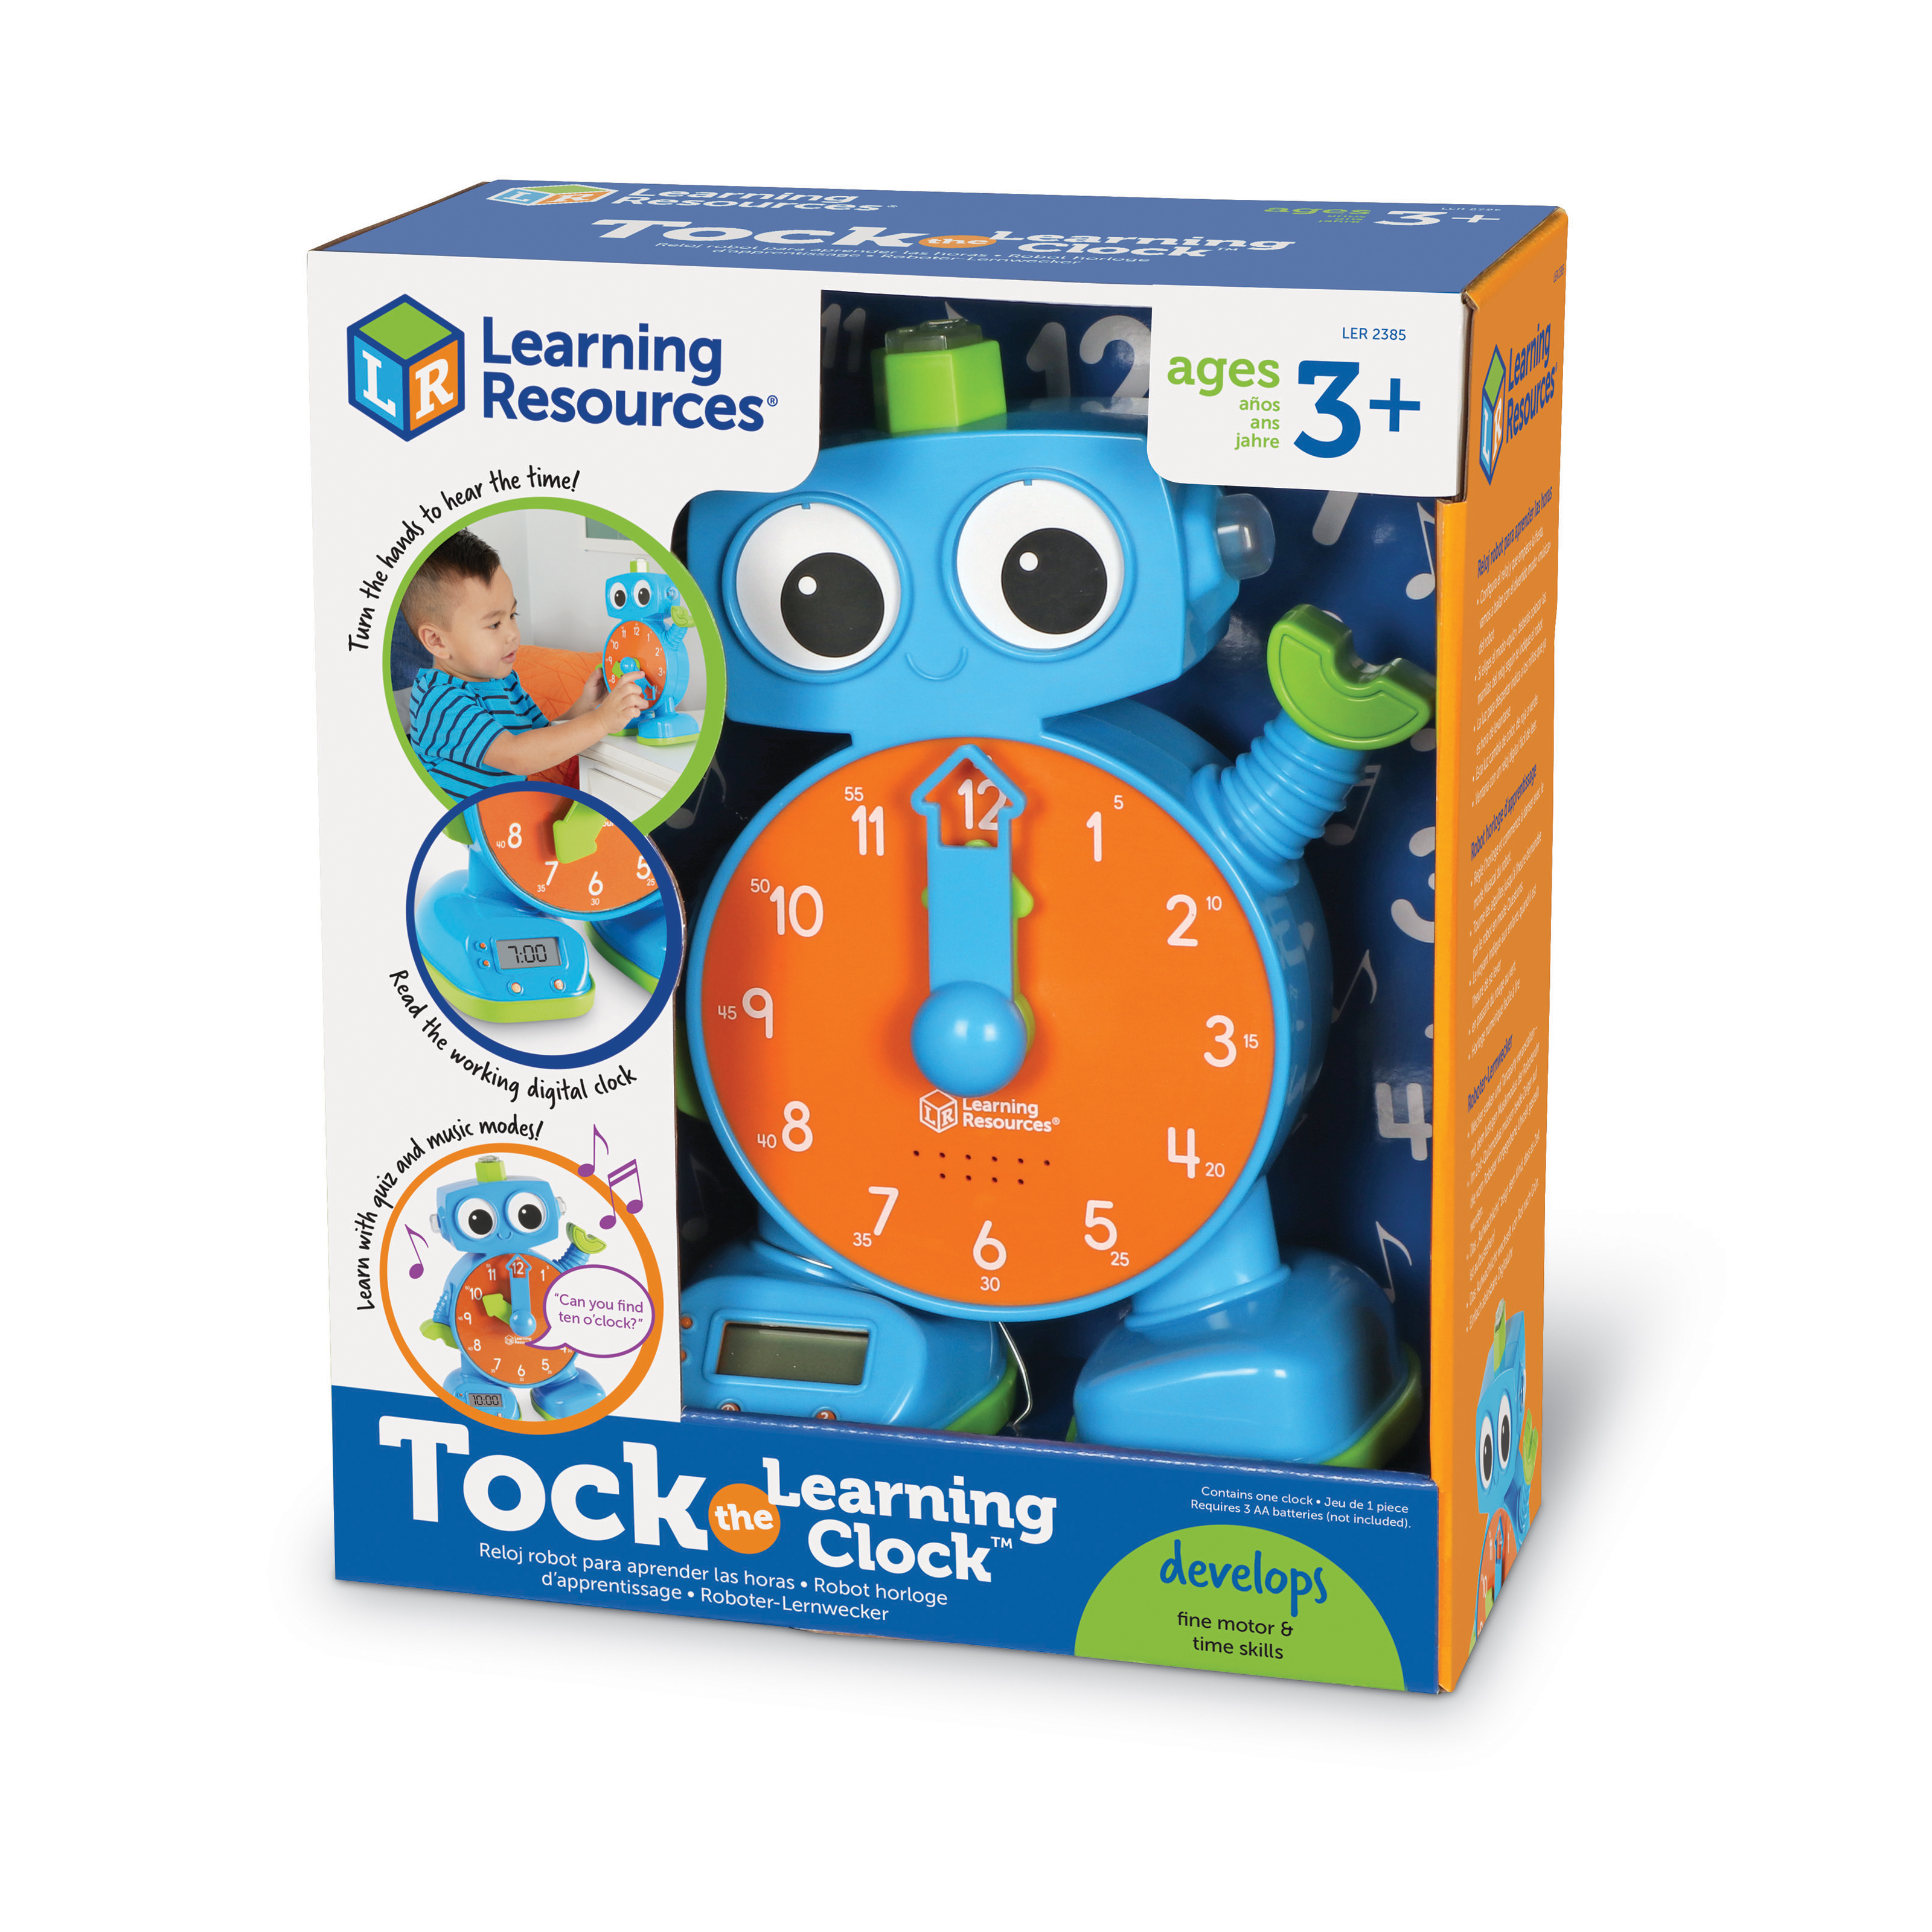 Image of Learning Resources Tock the Learning Clock